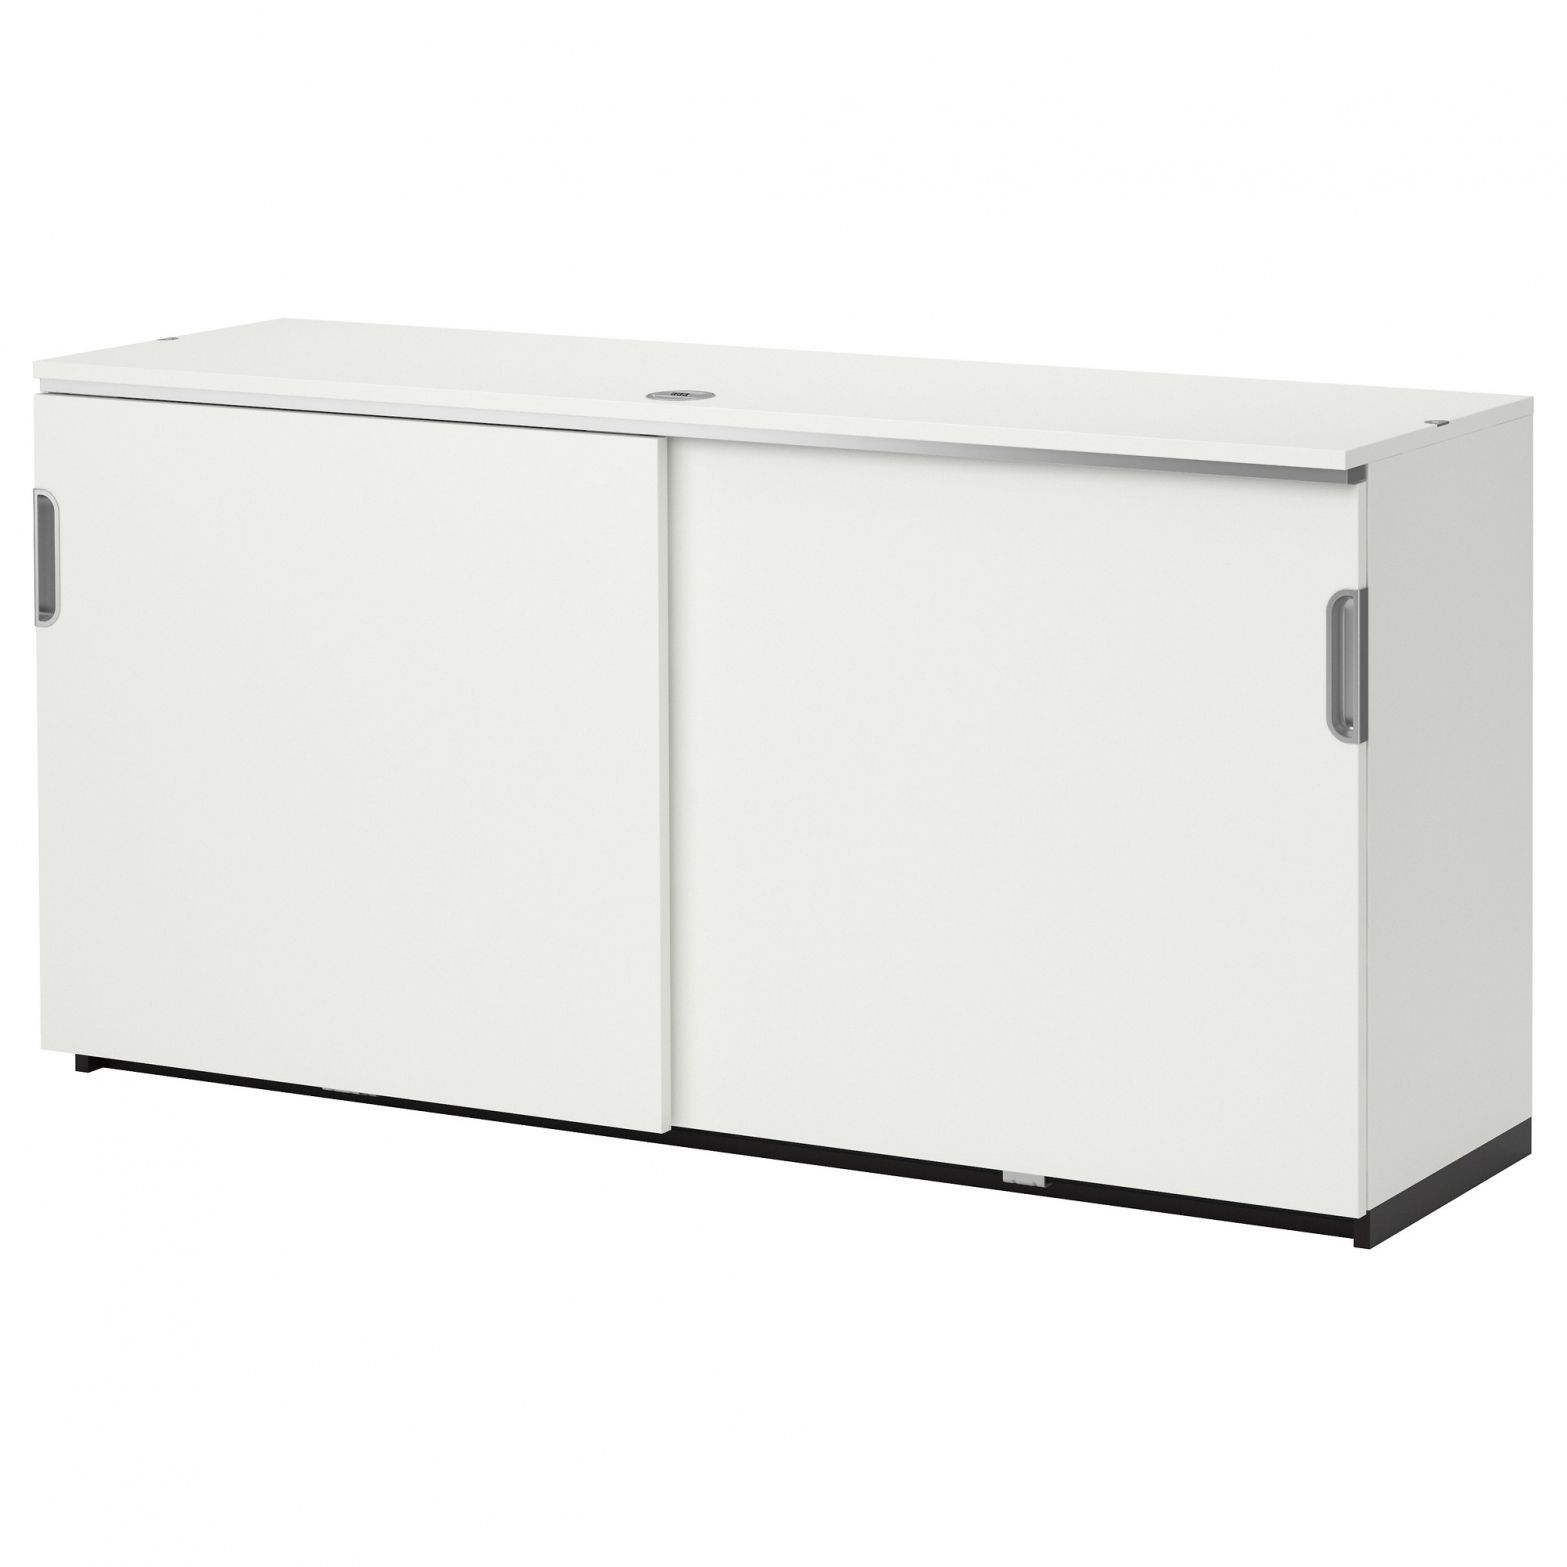 2018 Office Storage Cabinets Ikea Home Furniture Sets Check More At Http